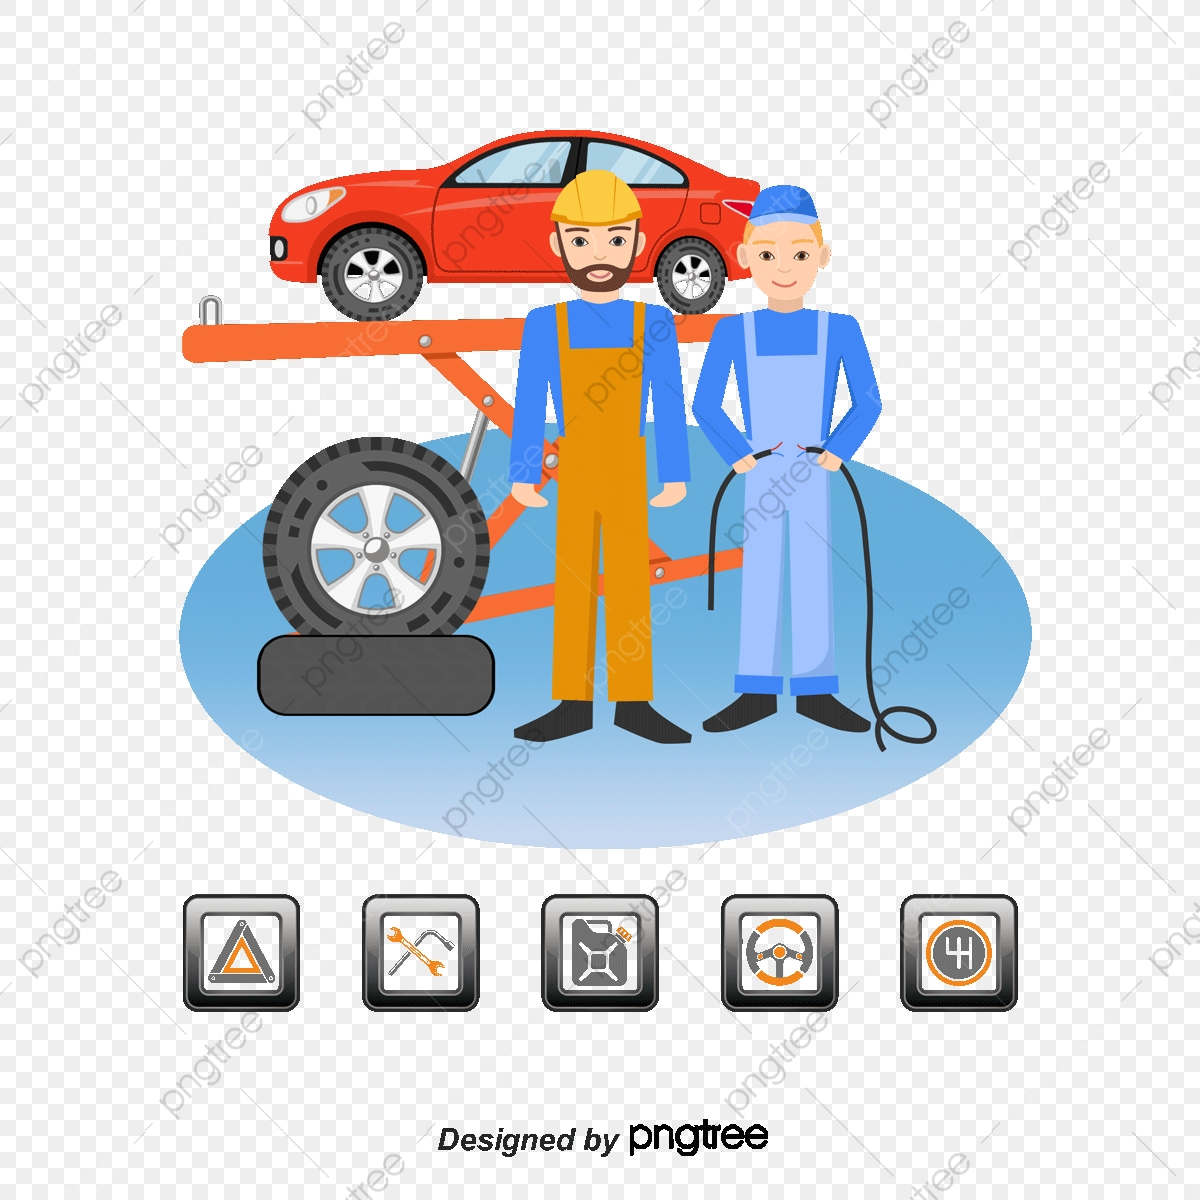 Happy Car Wrench Png - Car Repair Station Vector Image, Service Centre, Maintenance ...